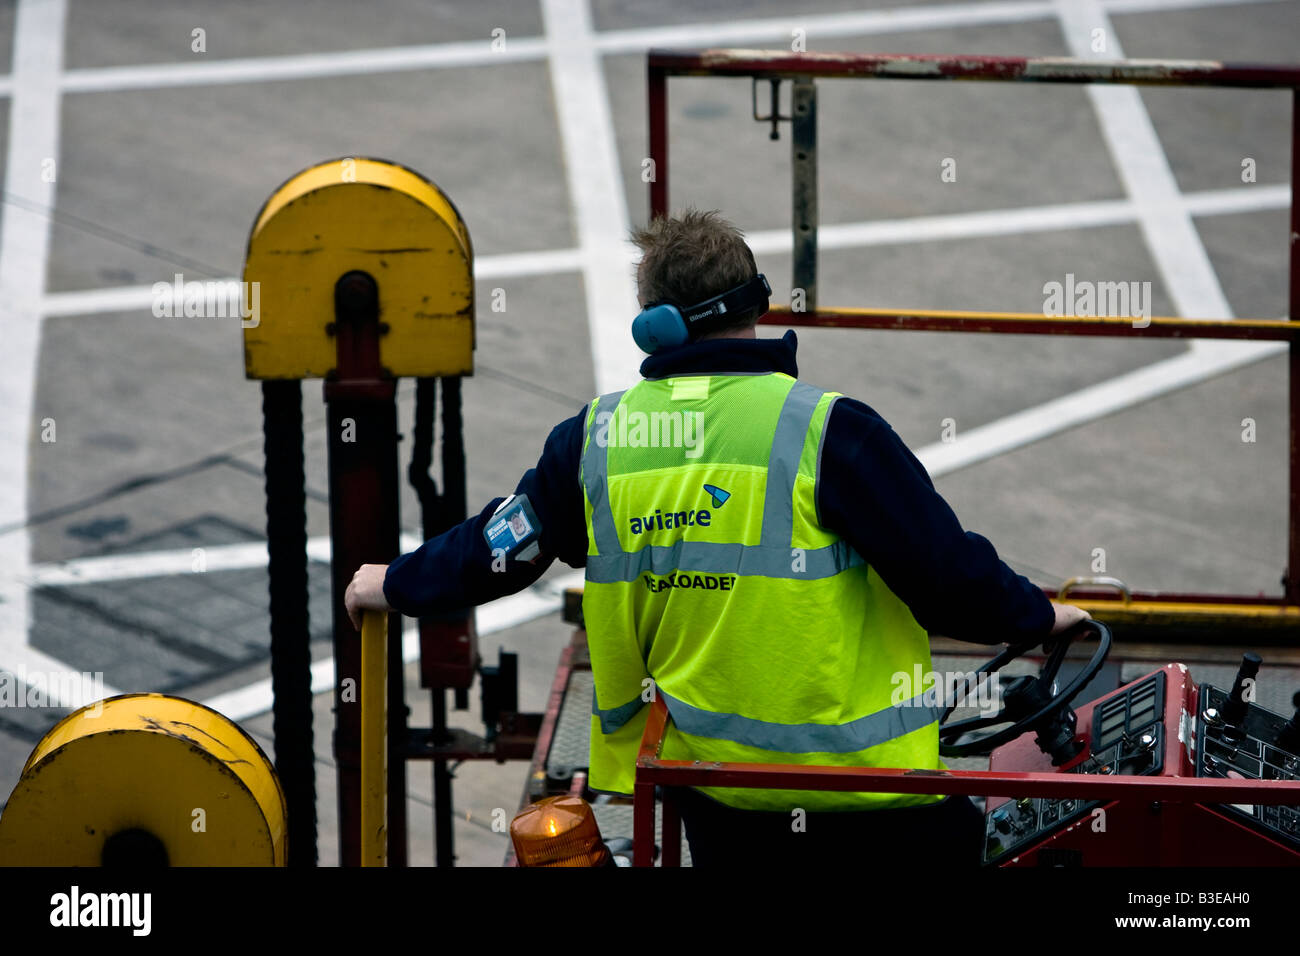 Luggage Handler Manchester Airport Air side - Stock Image